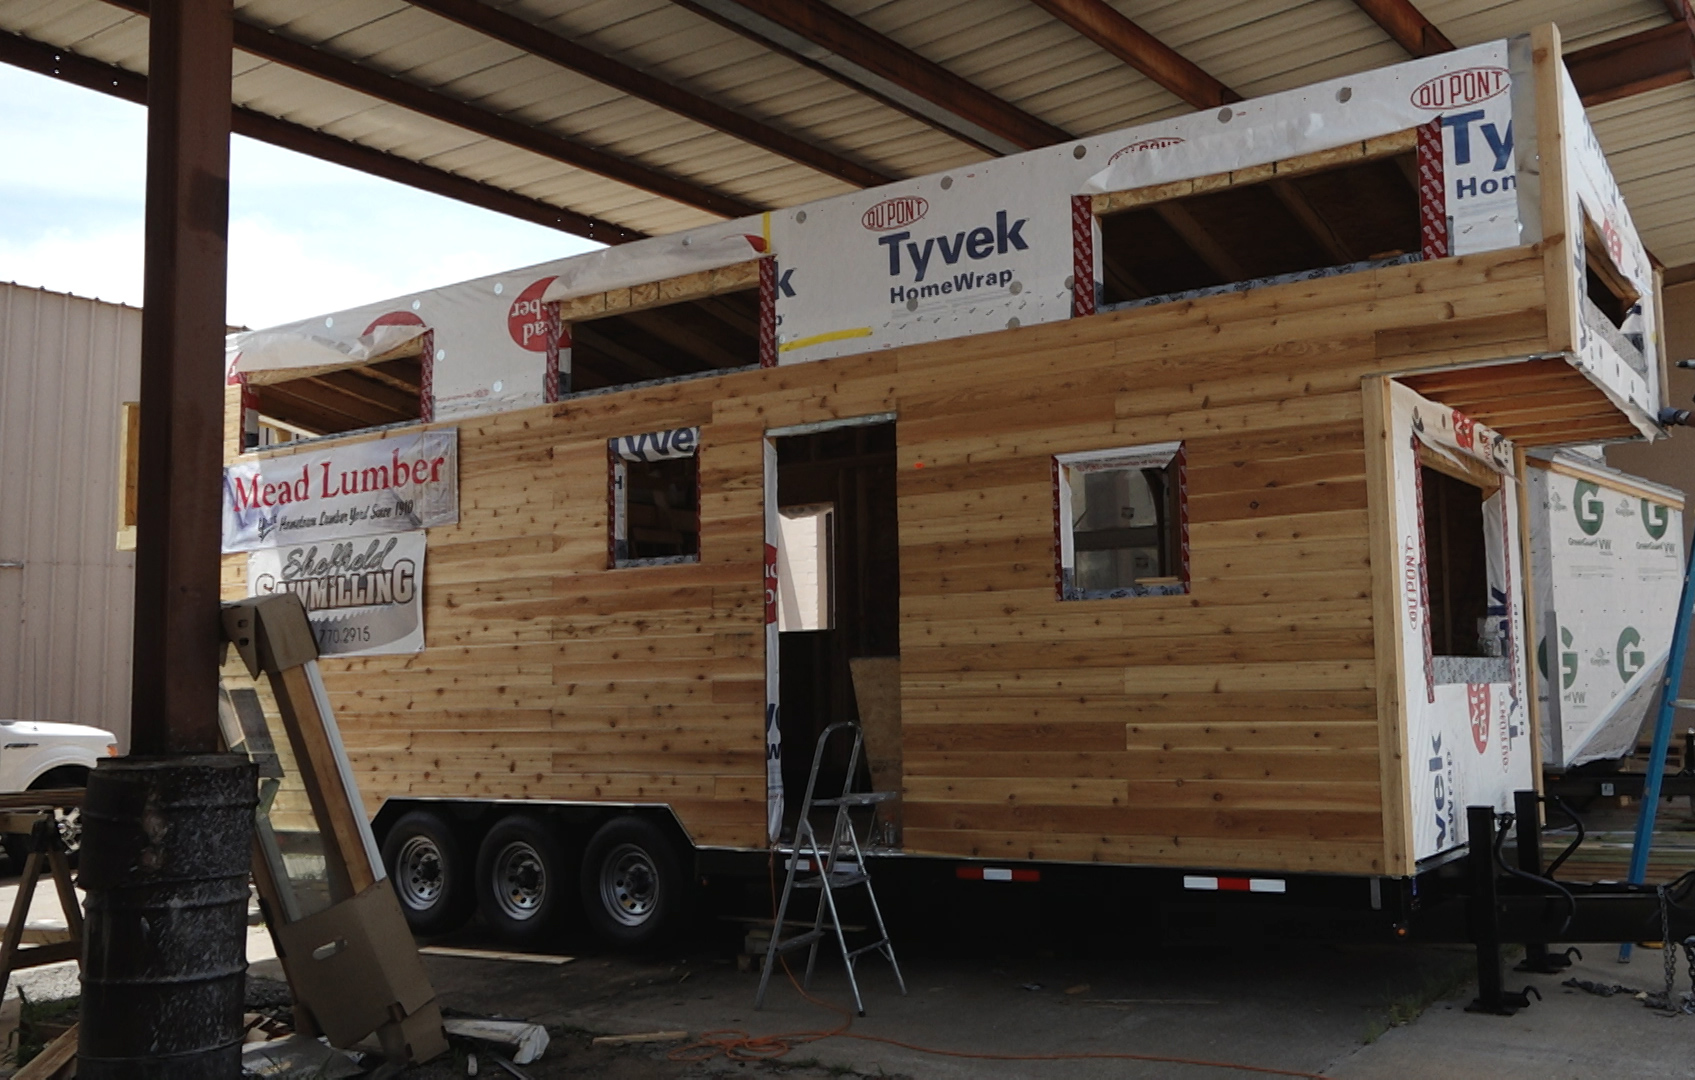 Brandon Irwin Assistant Professor Of Kinesiology And Julia Day Interior Design Are Collaborating To Build A Tiny House